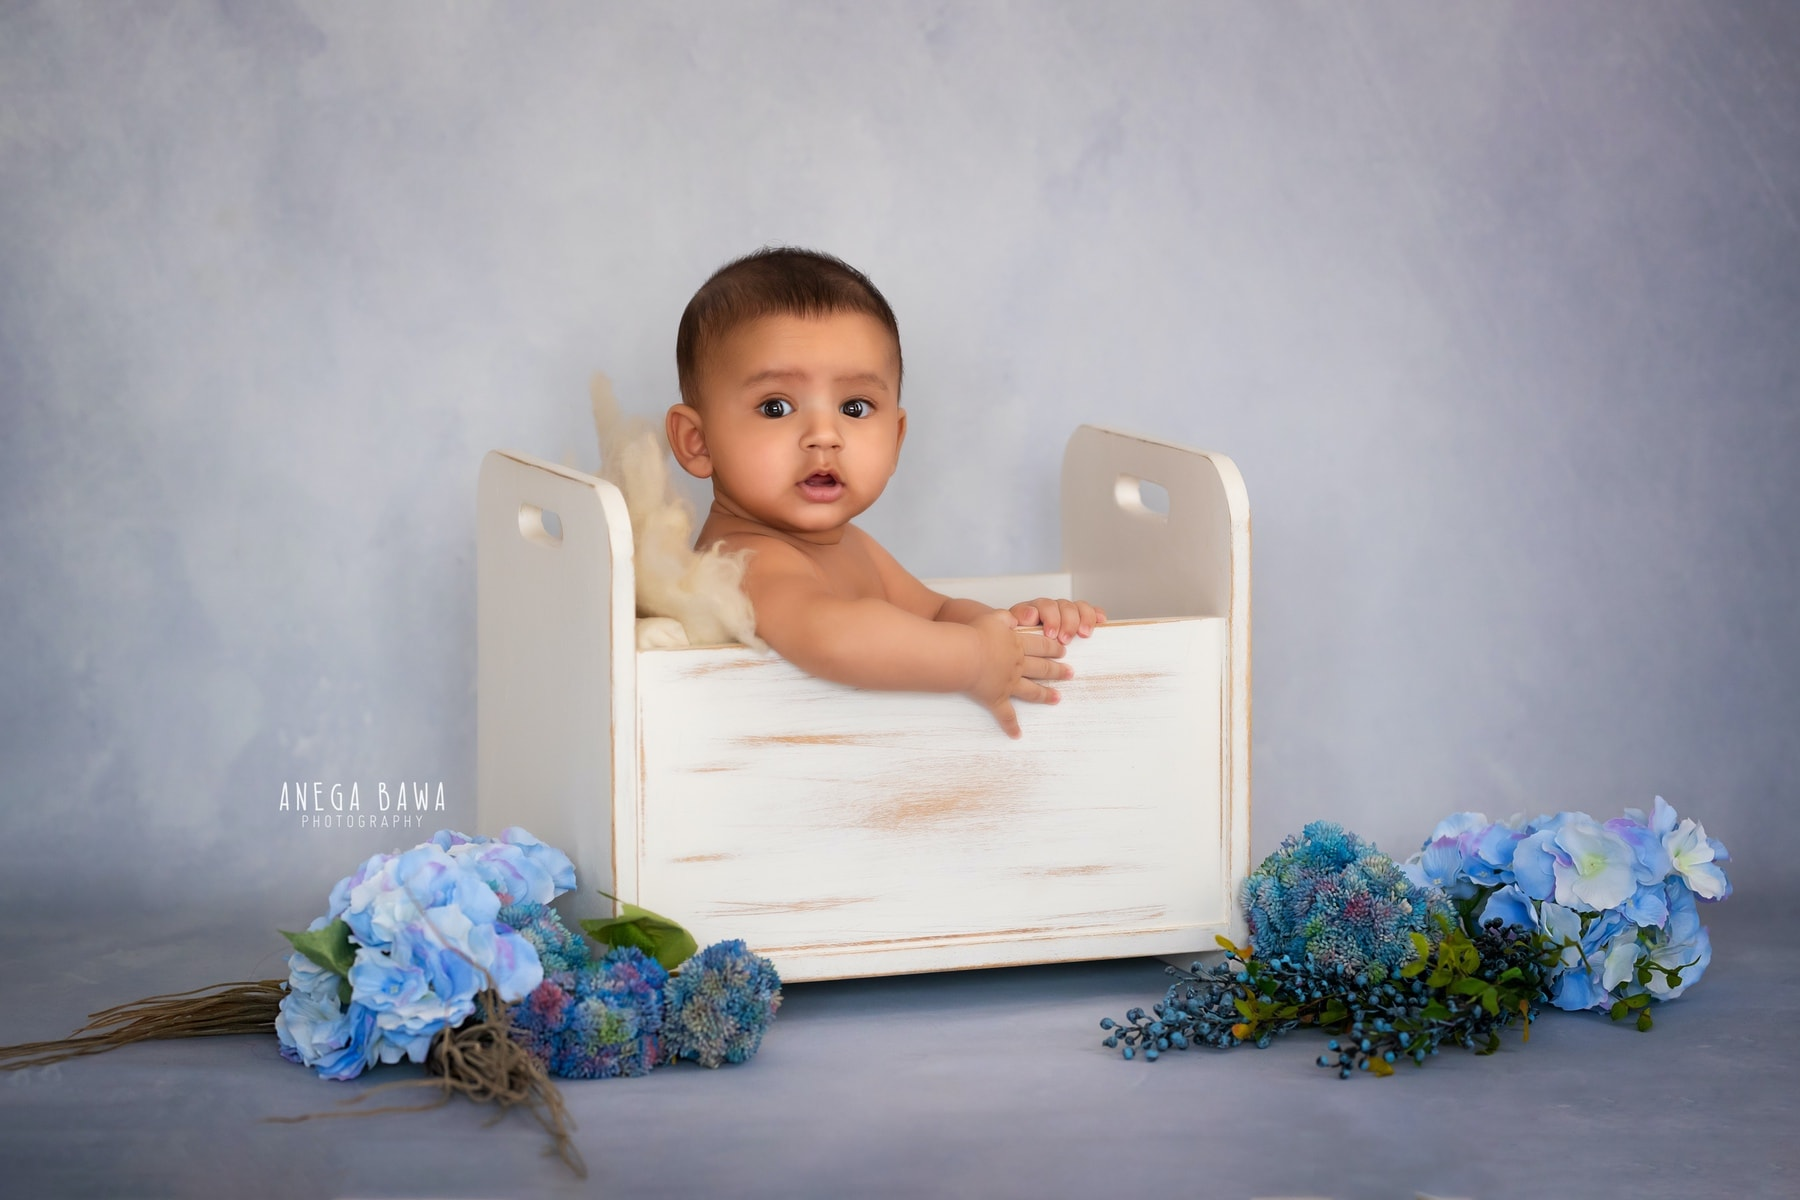 grey floral baby photography delhi 3 months baby boy photoshoot gurgaon anega bawa